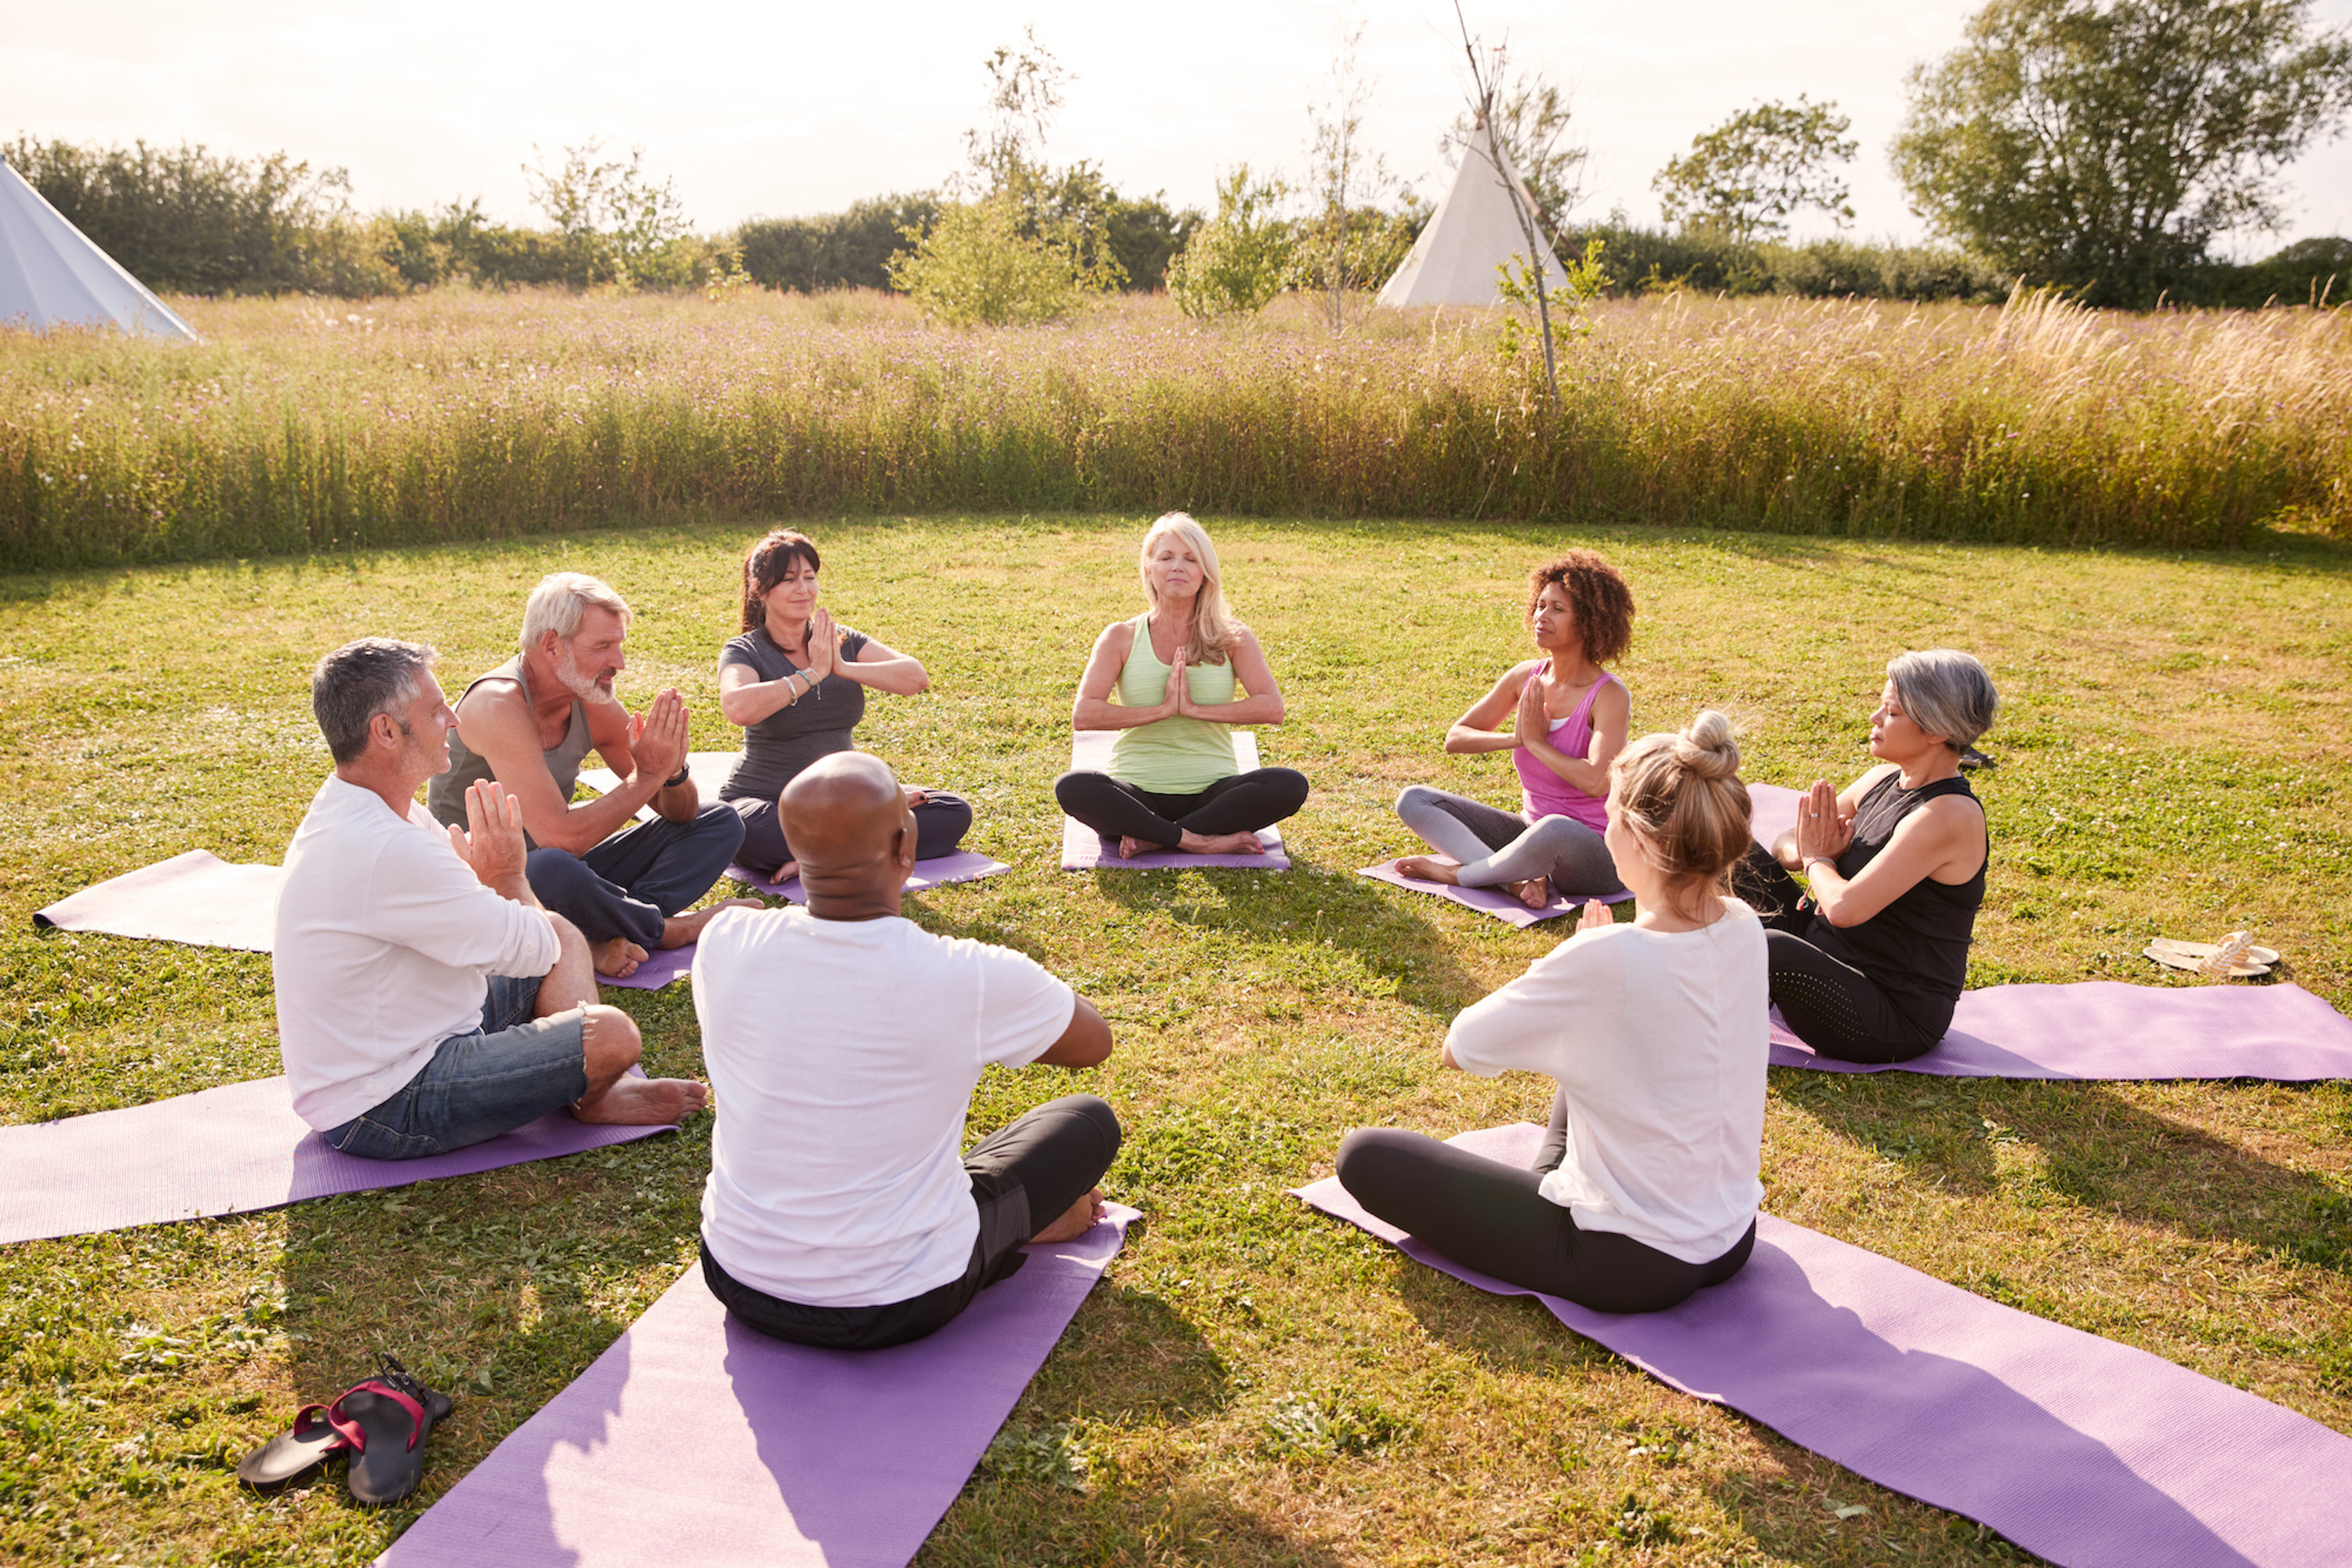 Yoga Meditation at retreat Portugal for all your wellbeing, connect with your inner self and nature